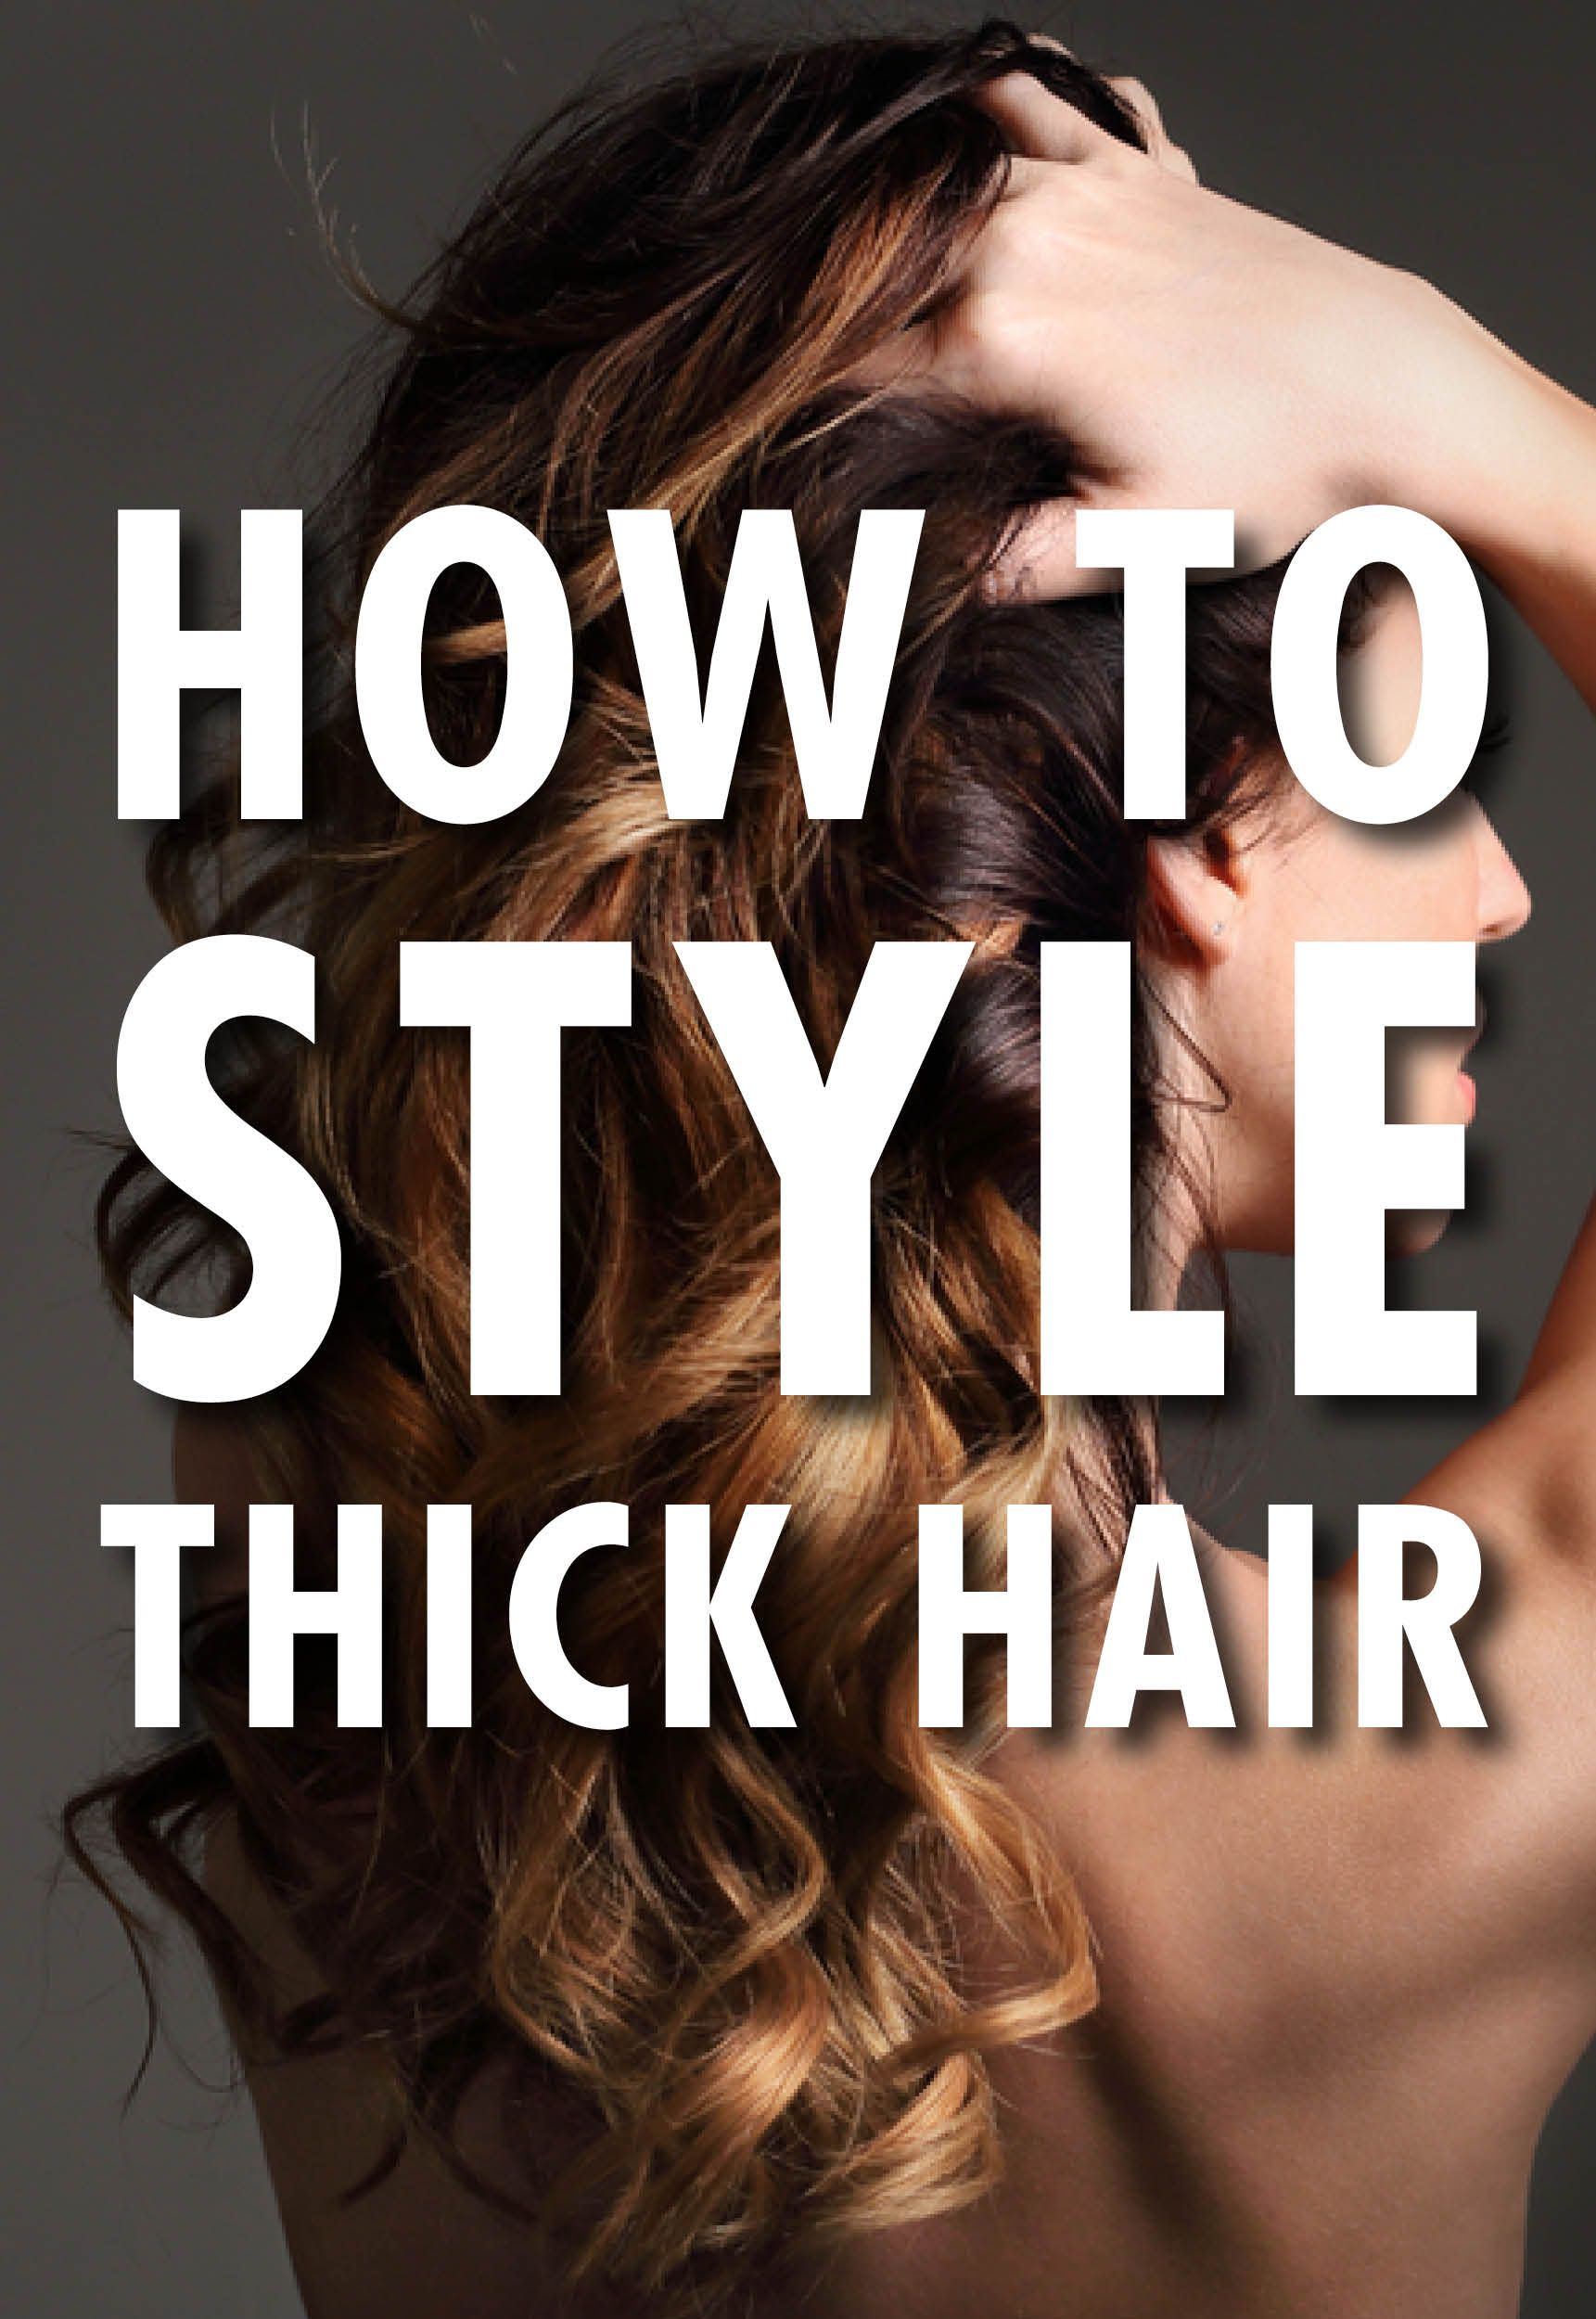 How To Style Thick Hair Thick Hair Styling Tips Thick Hair Styles Long Thick Hair Hair Styles